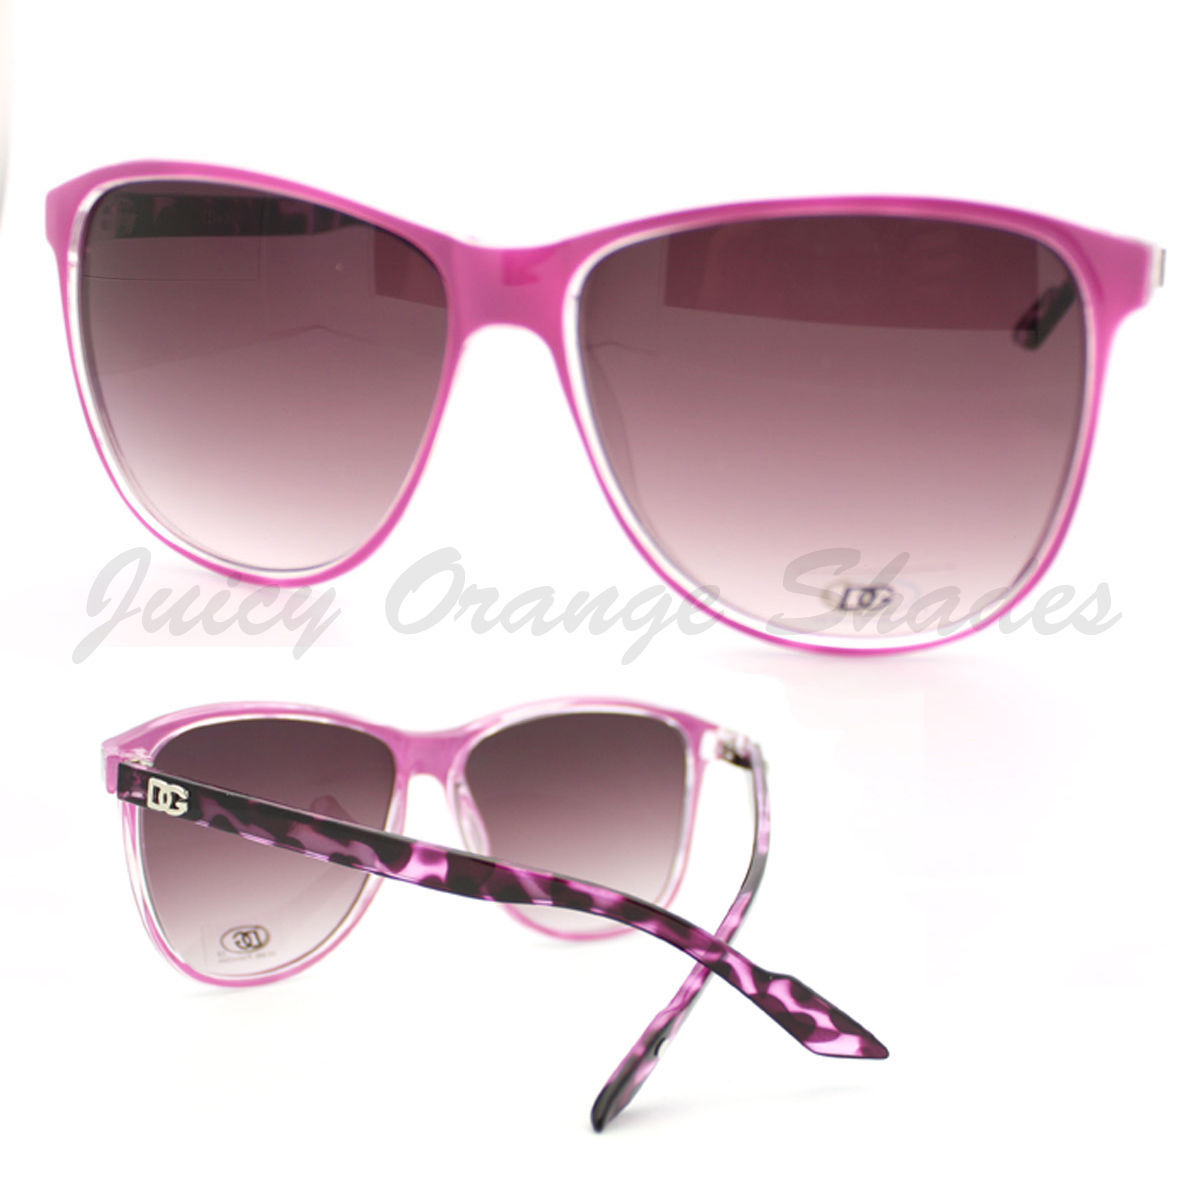 Womens Sunglasses Retro Fashion Eyewear 2-Tone Classic Frames (8 Colors)